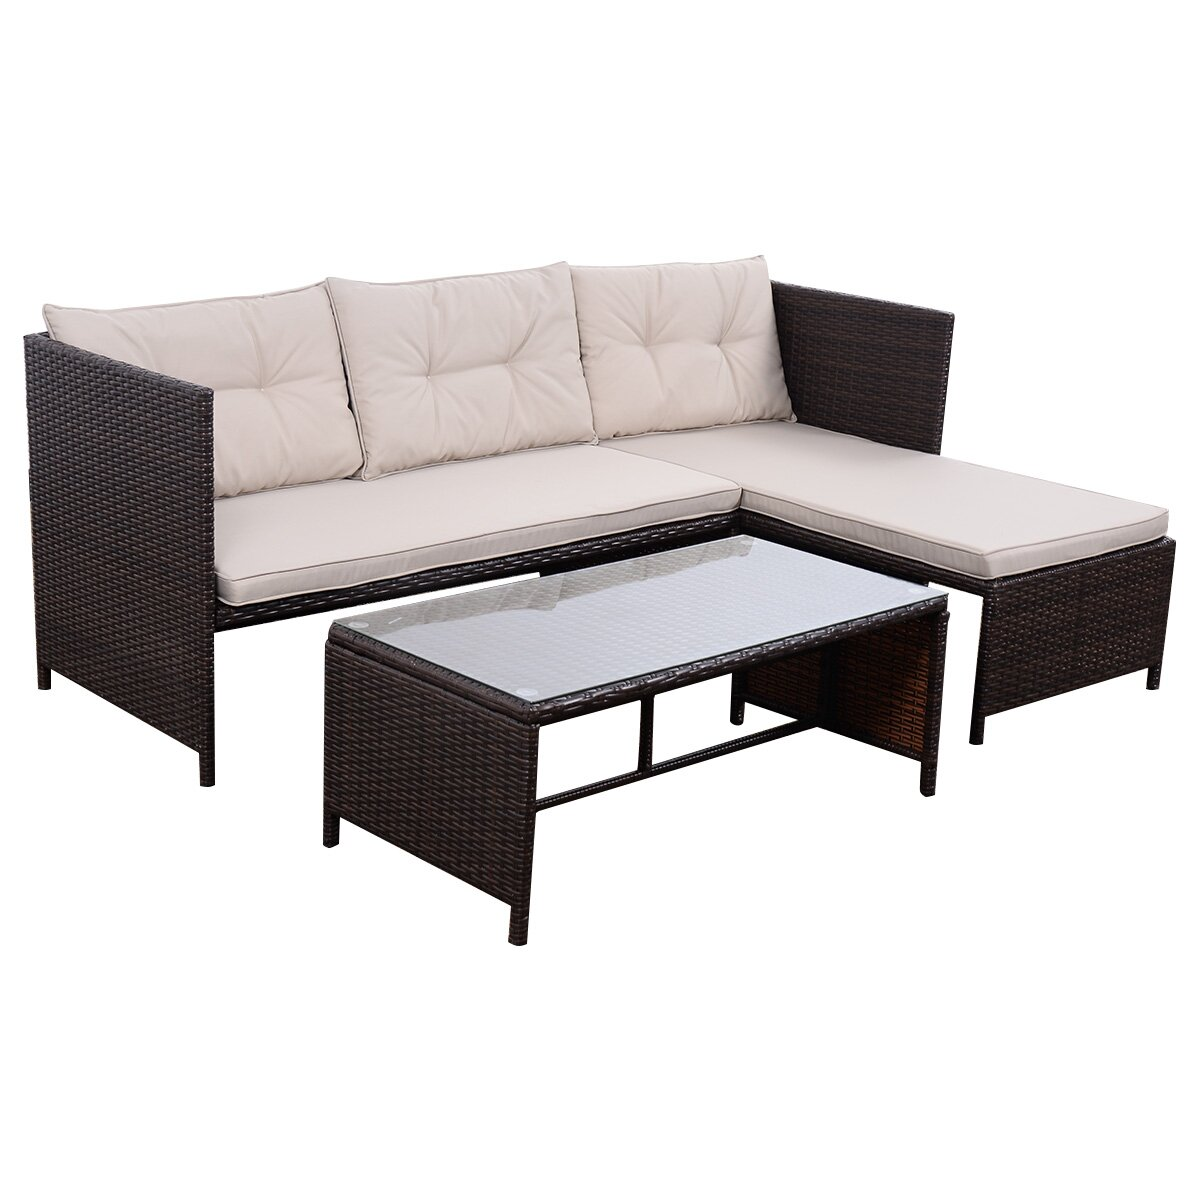 Gymax 3PC Rattan Furniture Sofa Lounge Chaise Set Outdoor Patio Garden